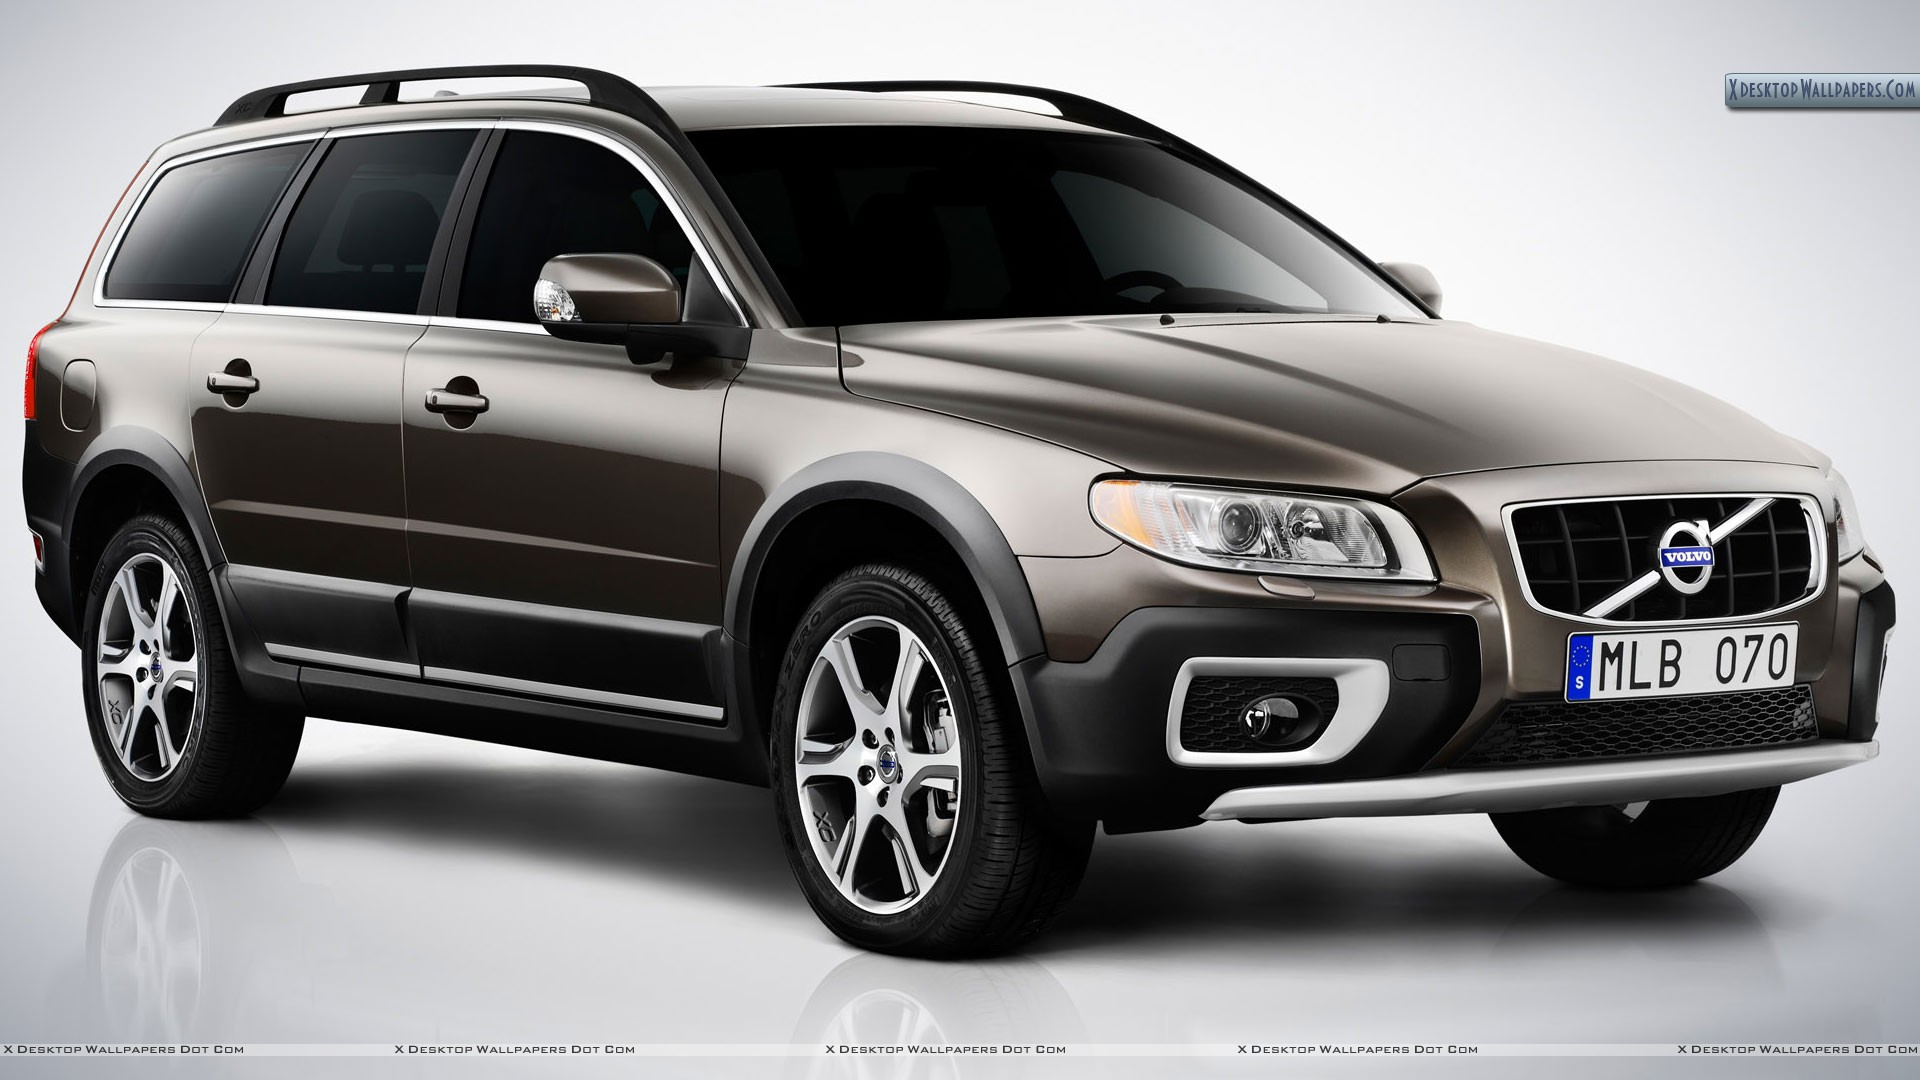 Volvo XC70 Wallpapers Photos Images in HD 1920x1080